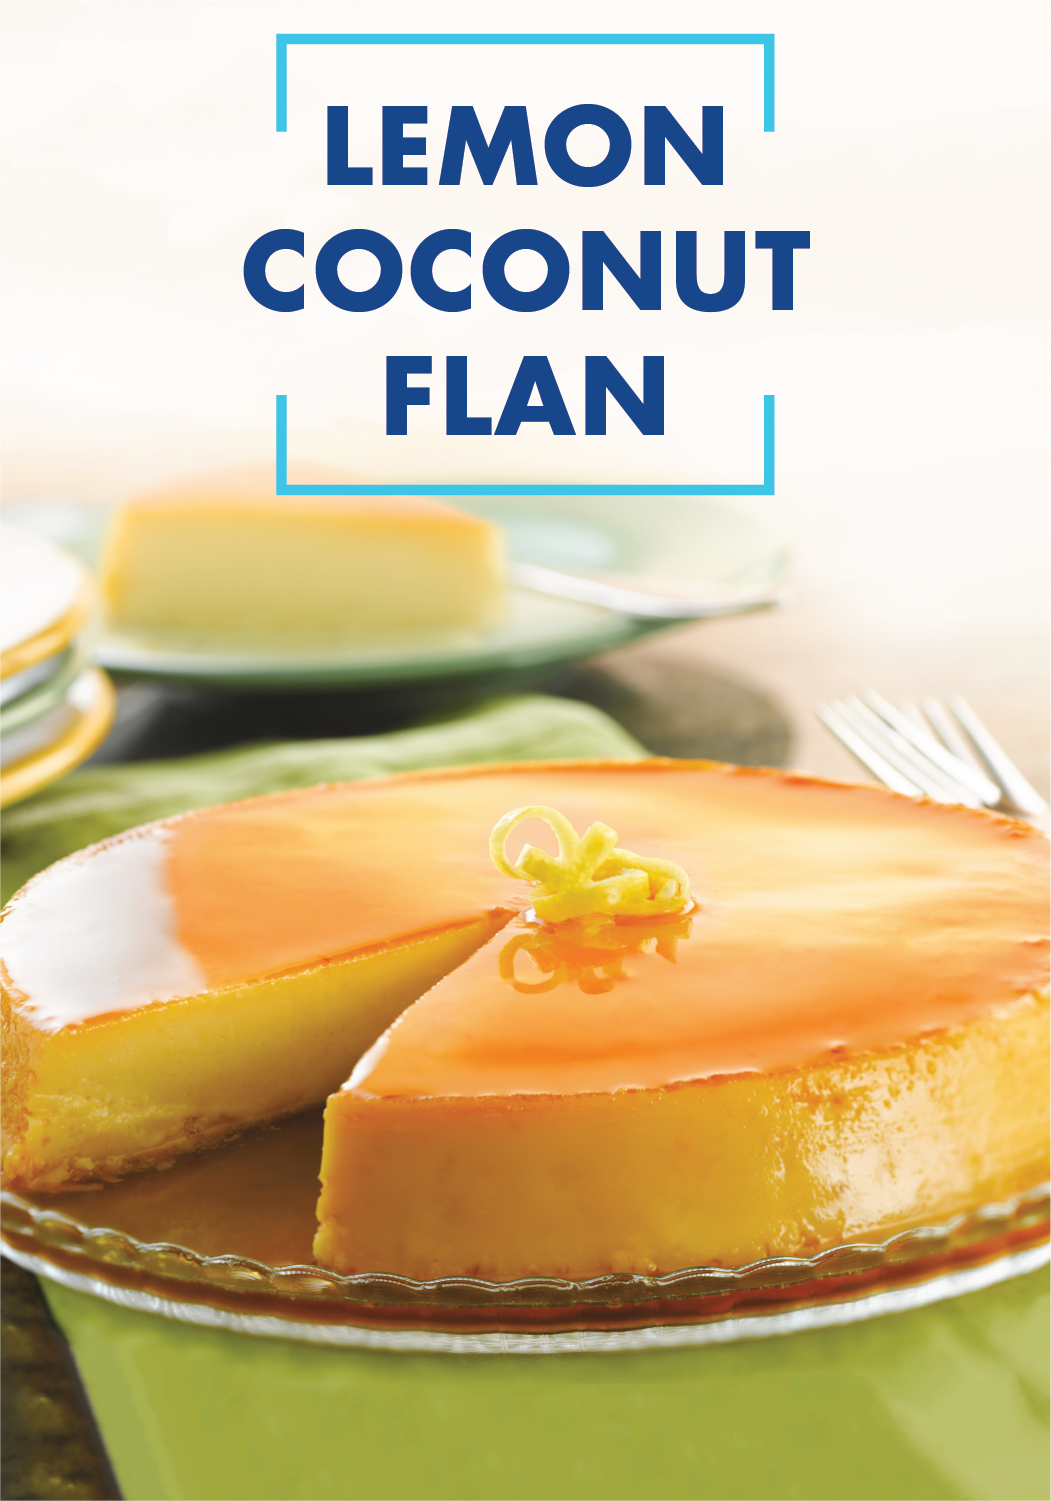 Photo of Lemon Coconut Flan